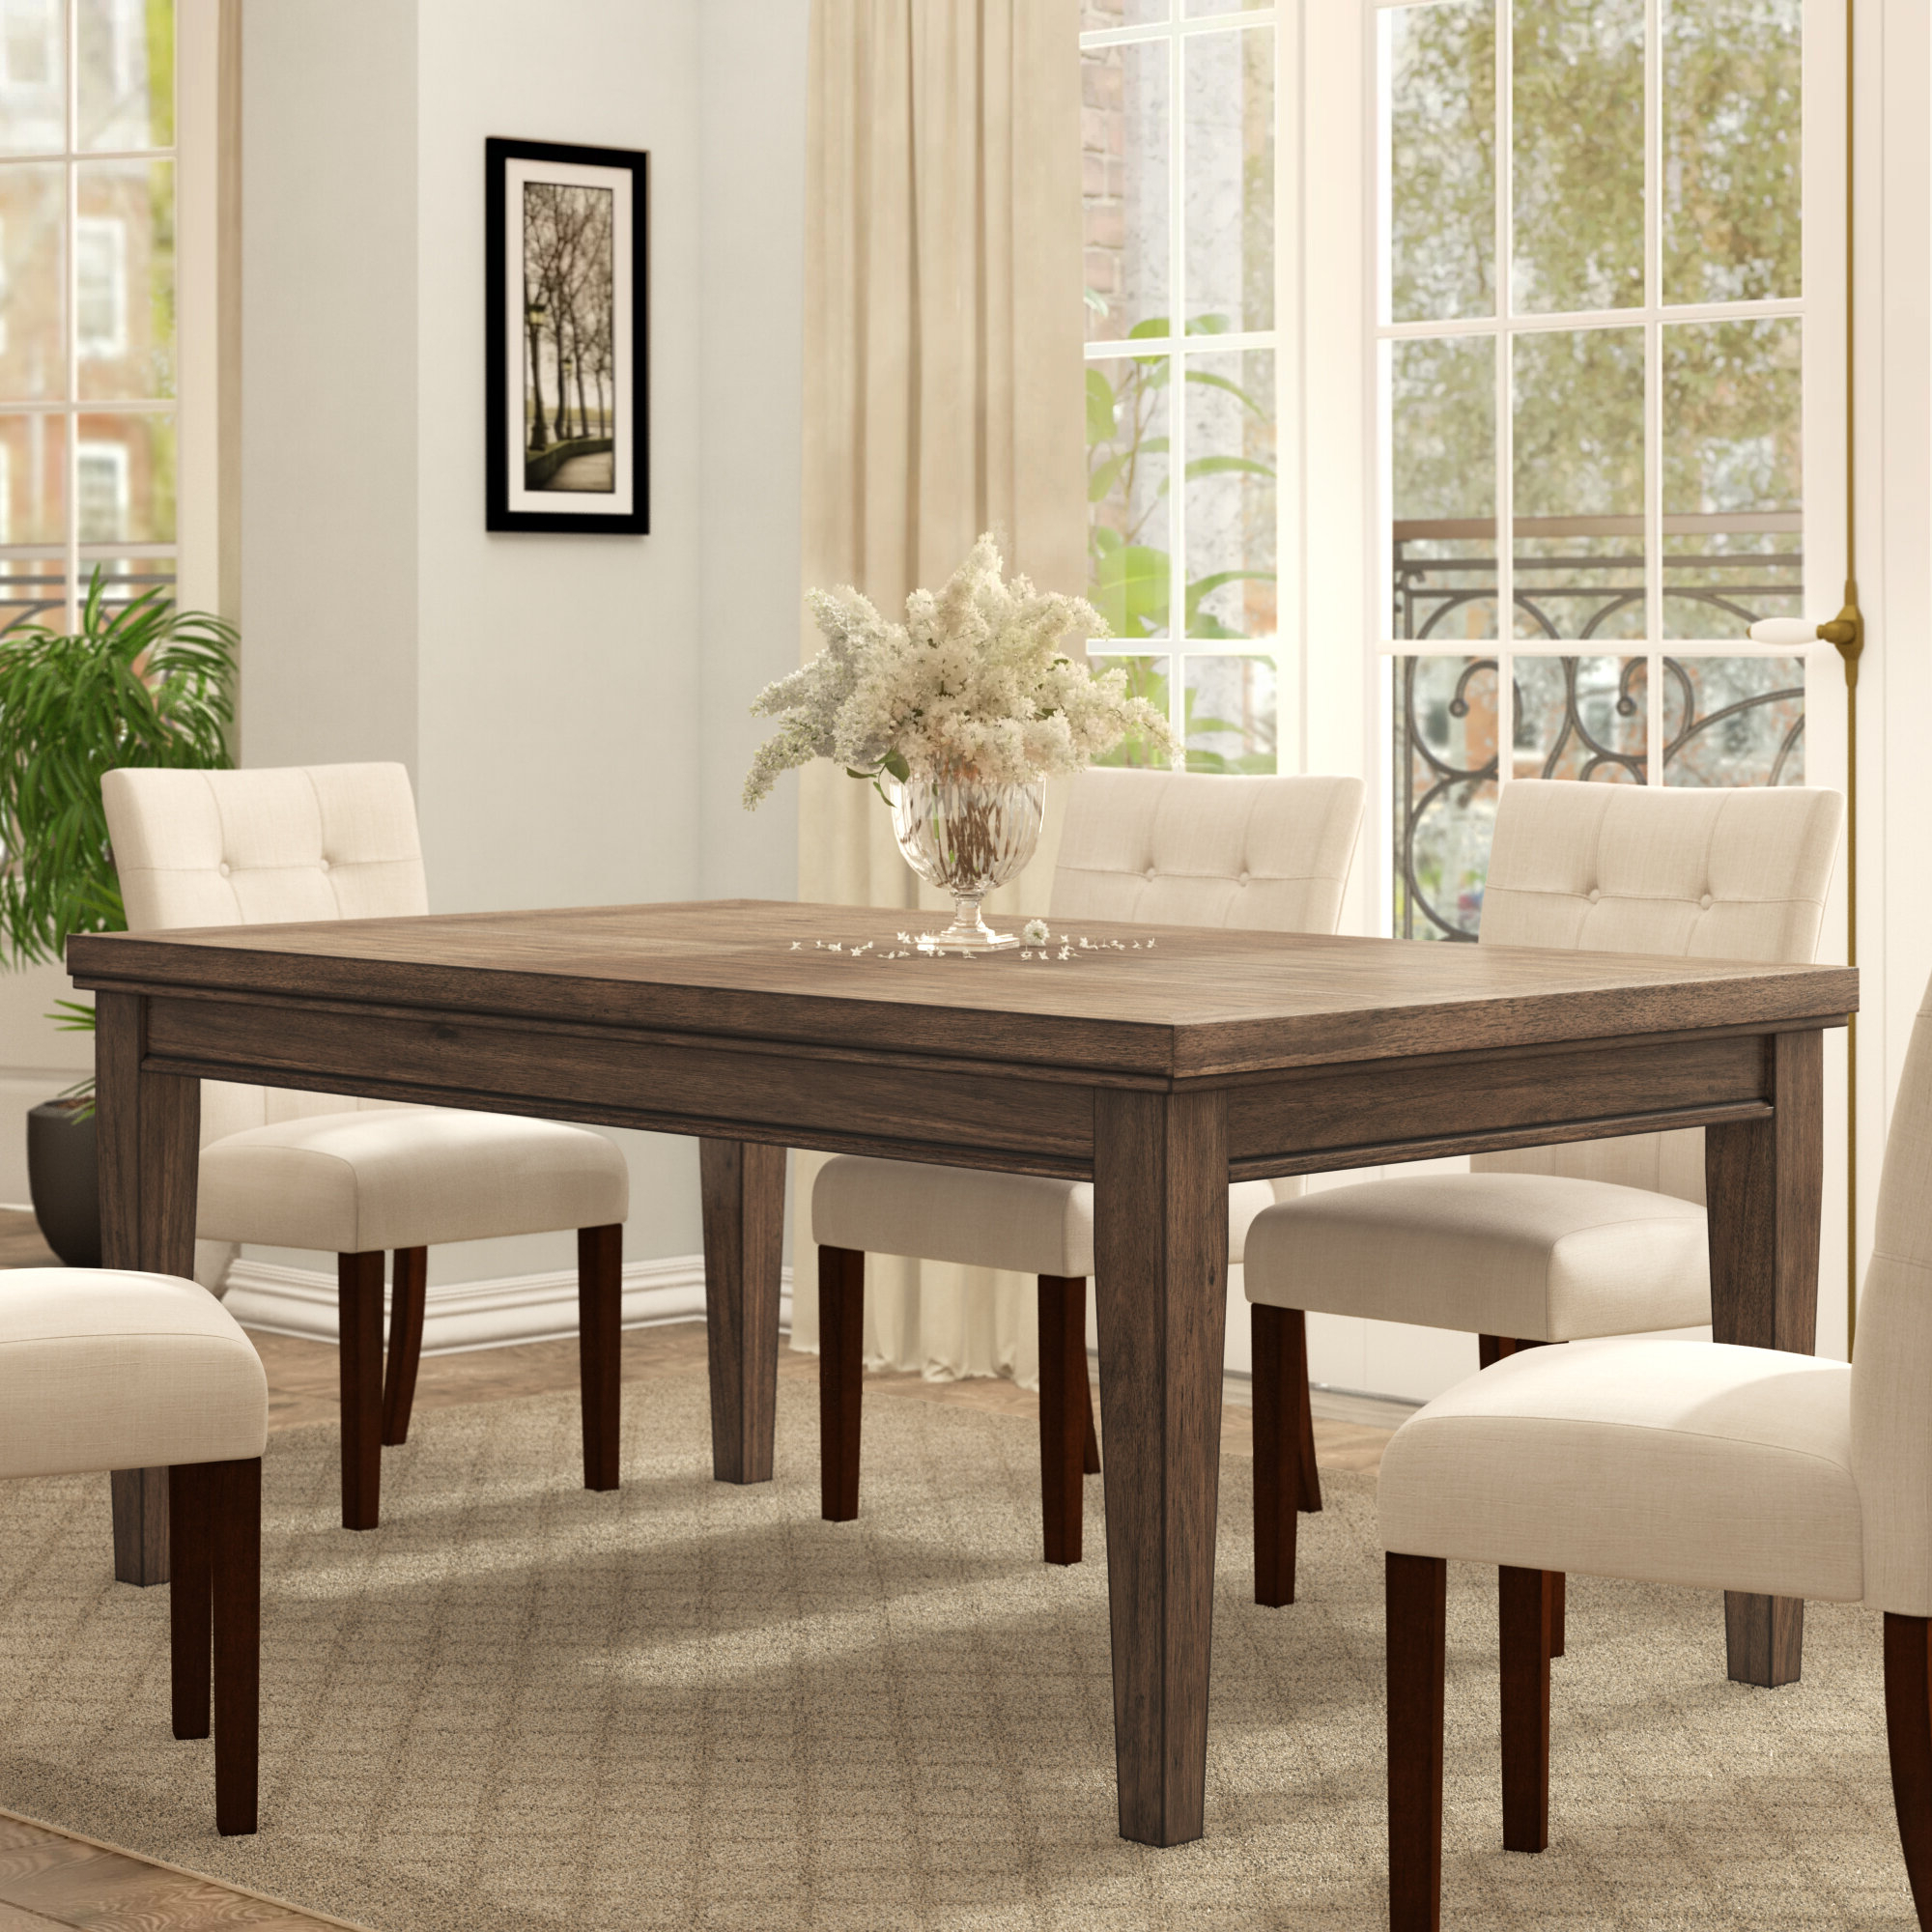 Ephraim 5 Piece Dining Sets Inside Newest Three Posts Penwortham Dining Table (View 5 of 25)